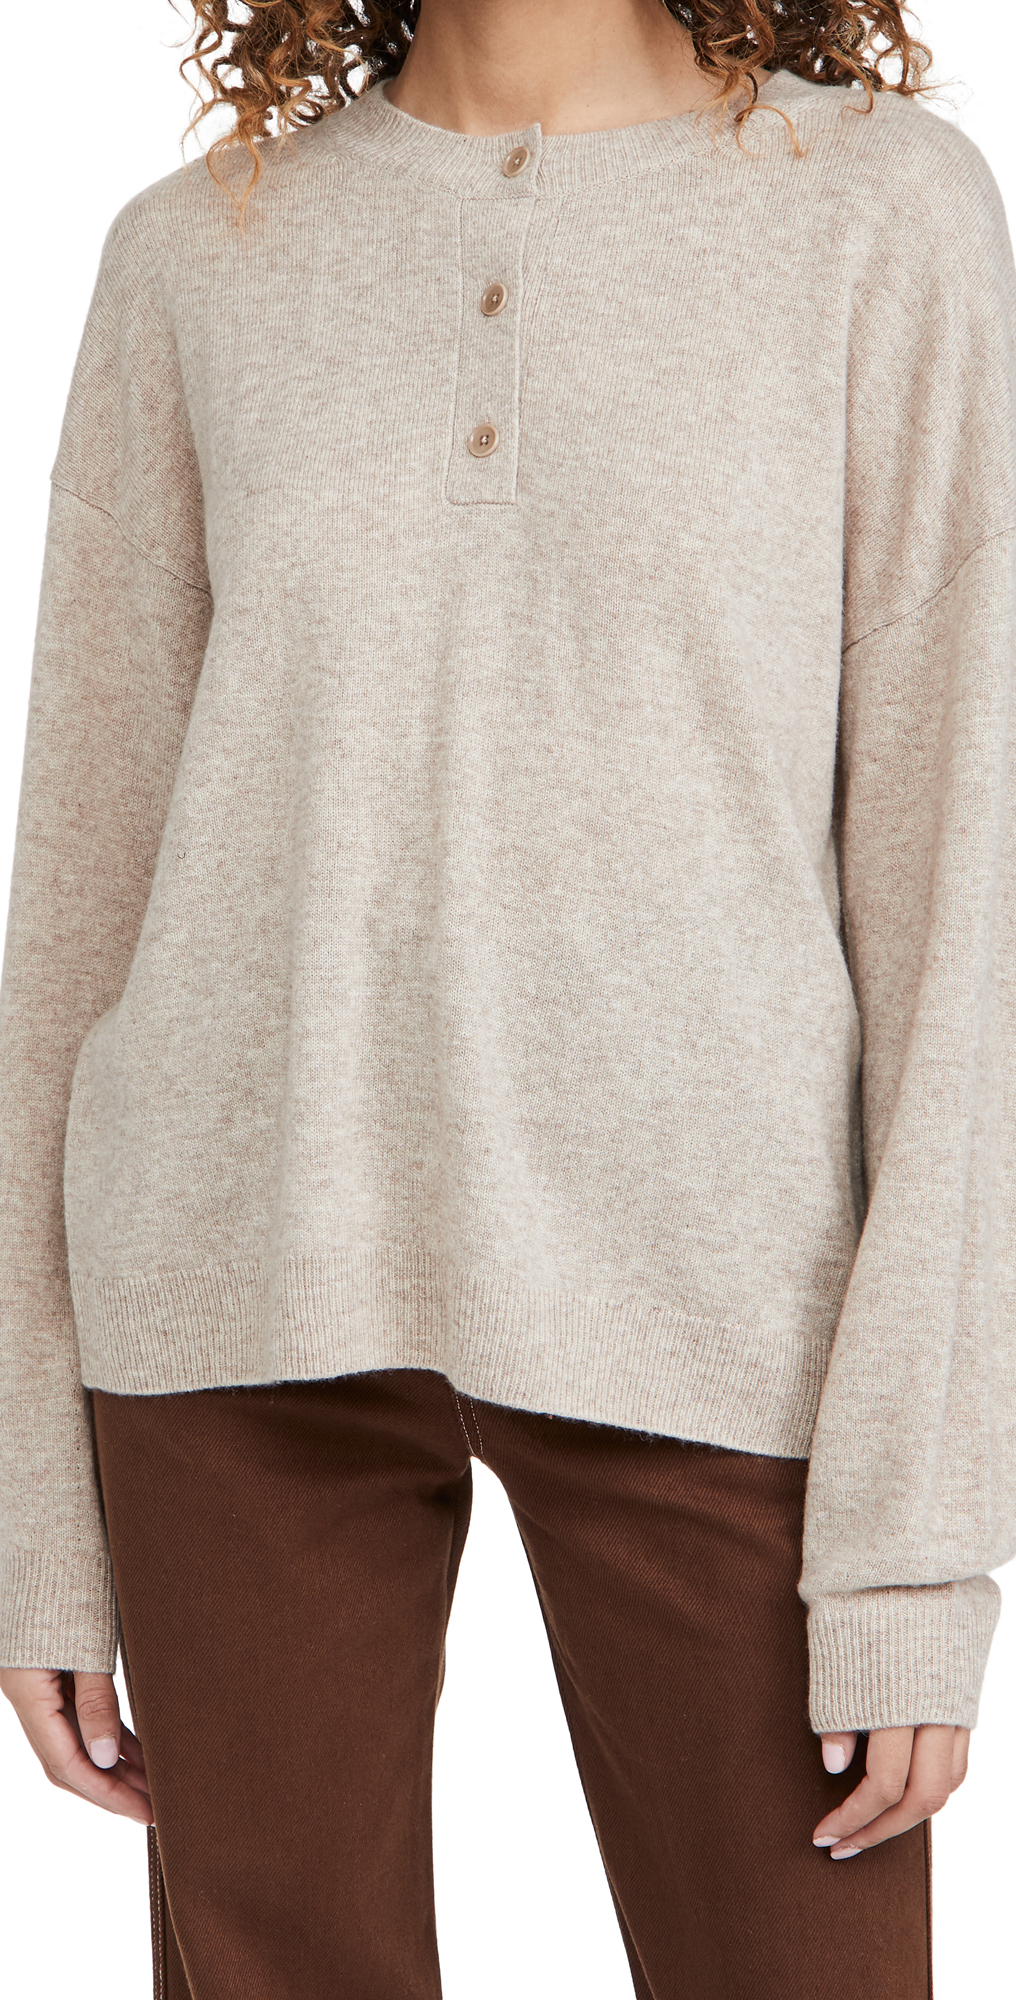 Reformation Oversized Cashmere Henley